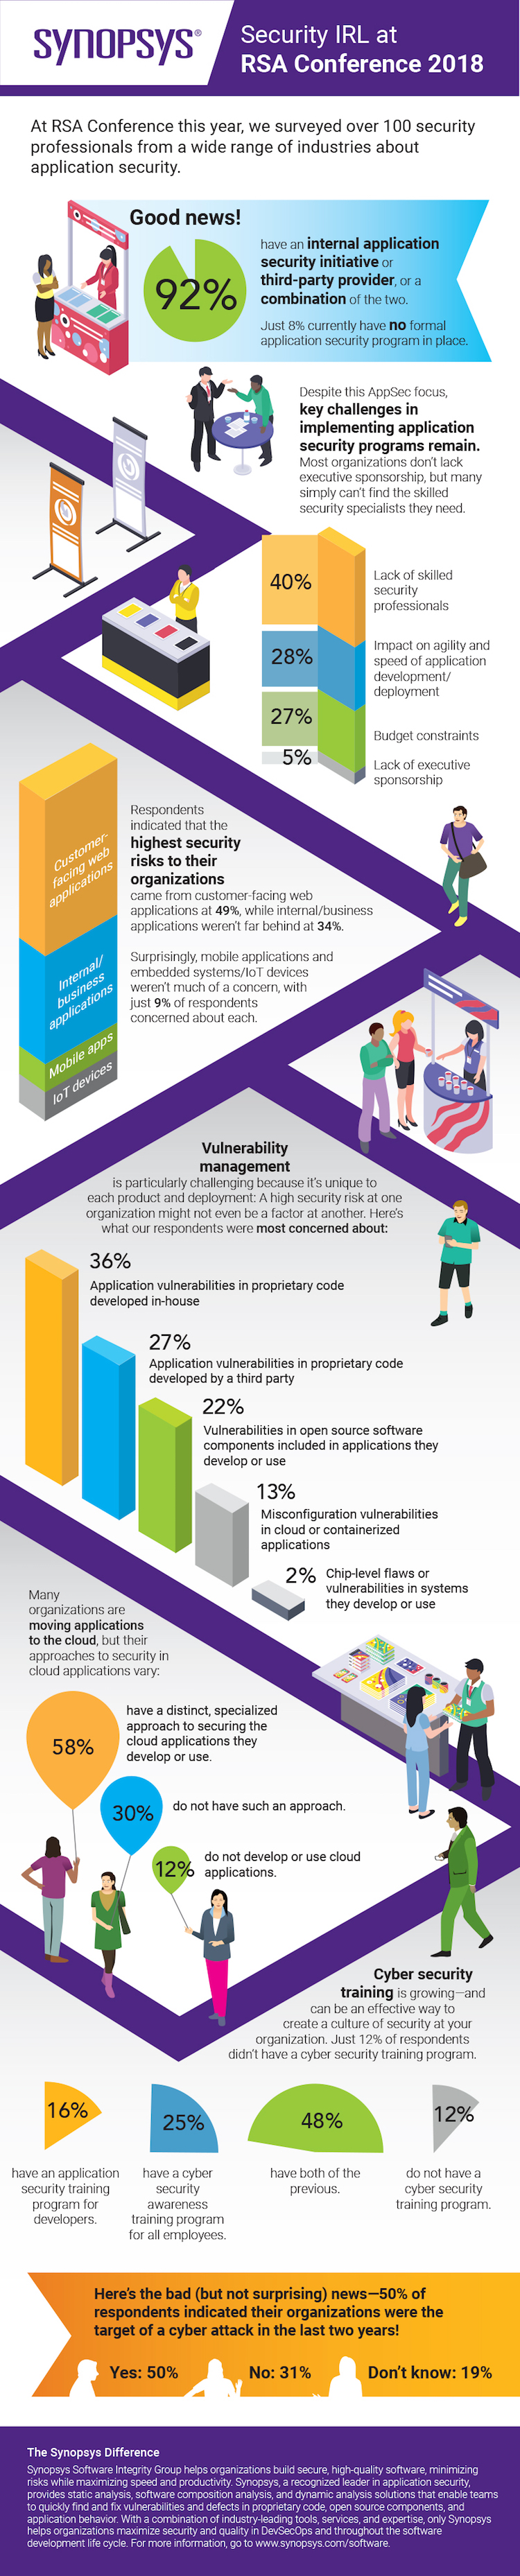 Synopsys RSA Conference Survey: Security IRL